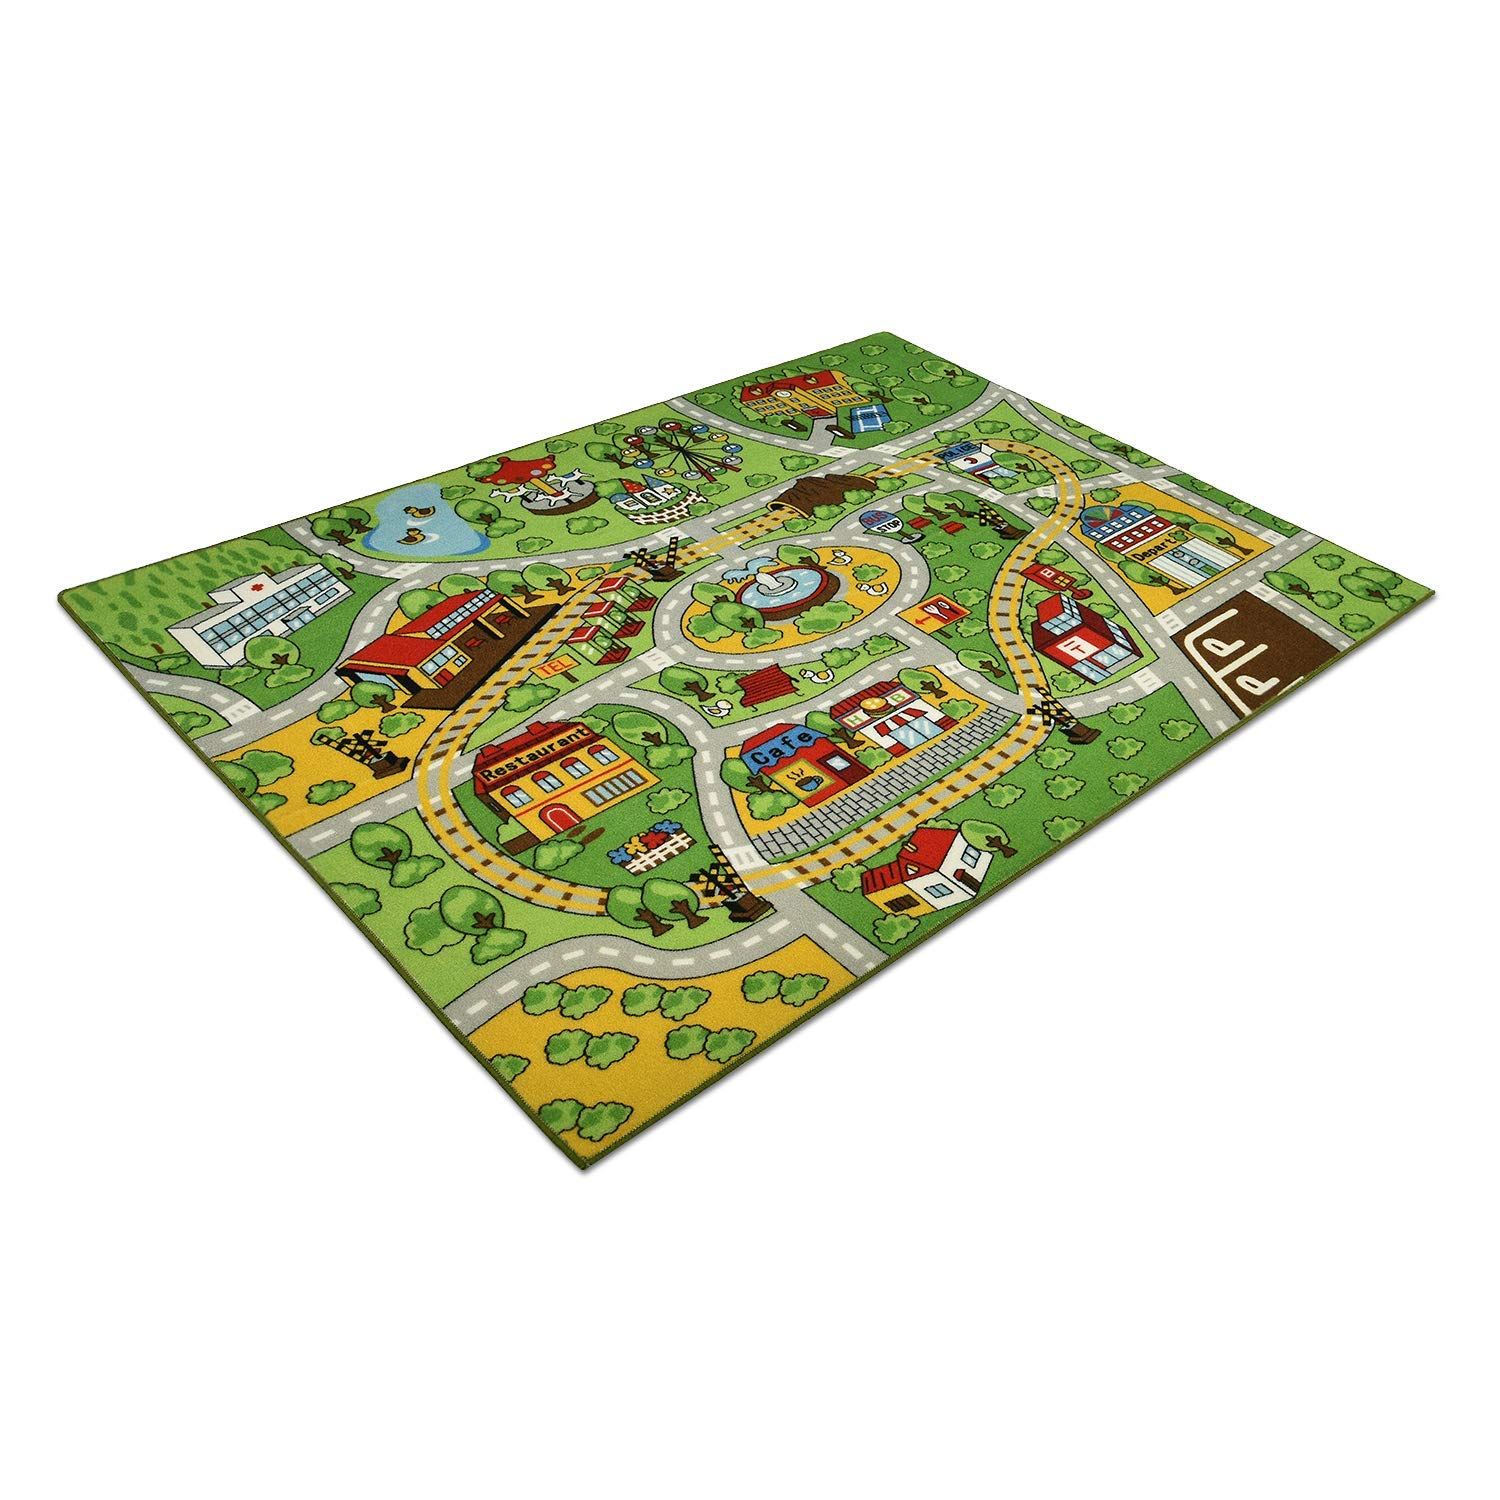 Buy Ikea Rug With Roads For Toy Cars And 3 Wooden Toy Vehicles In